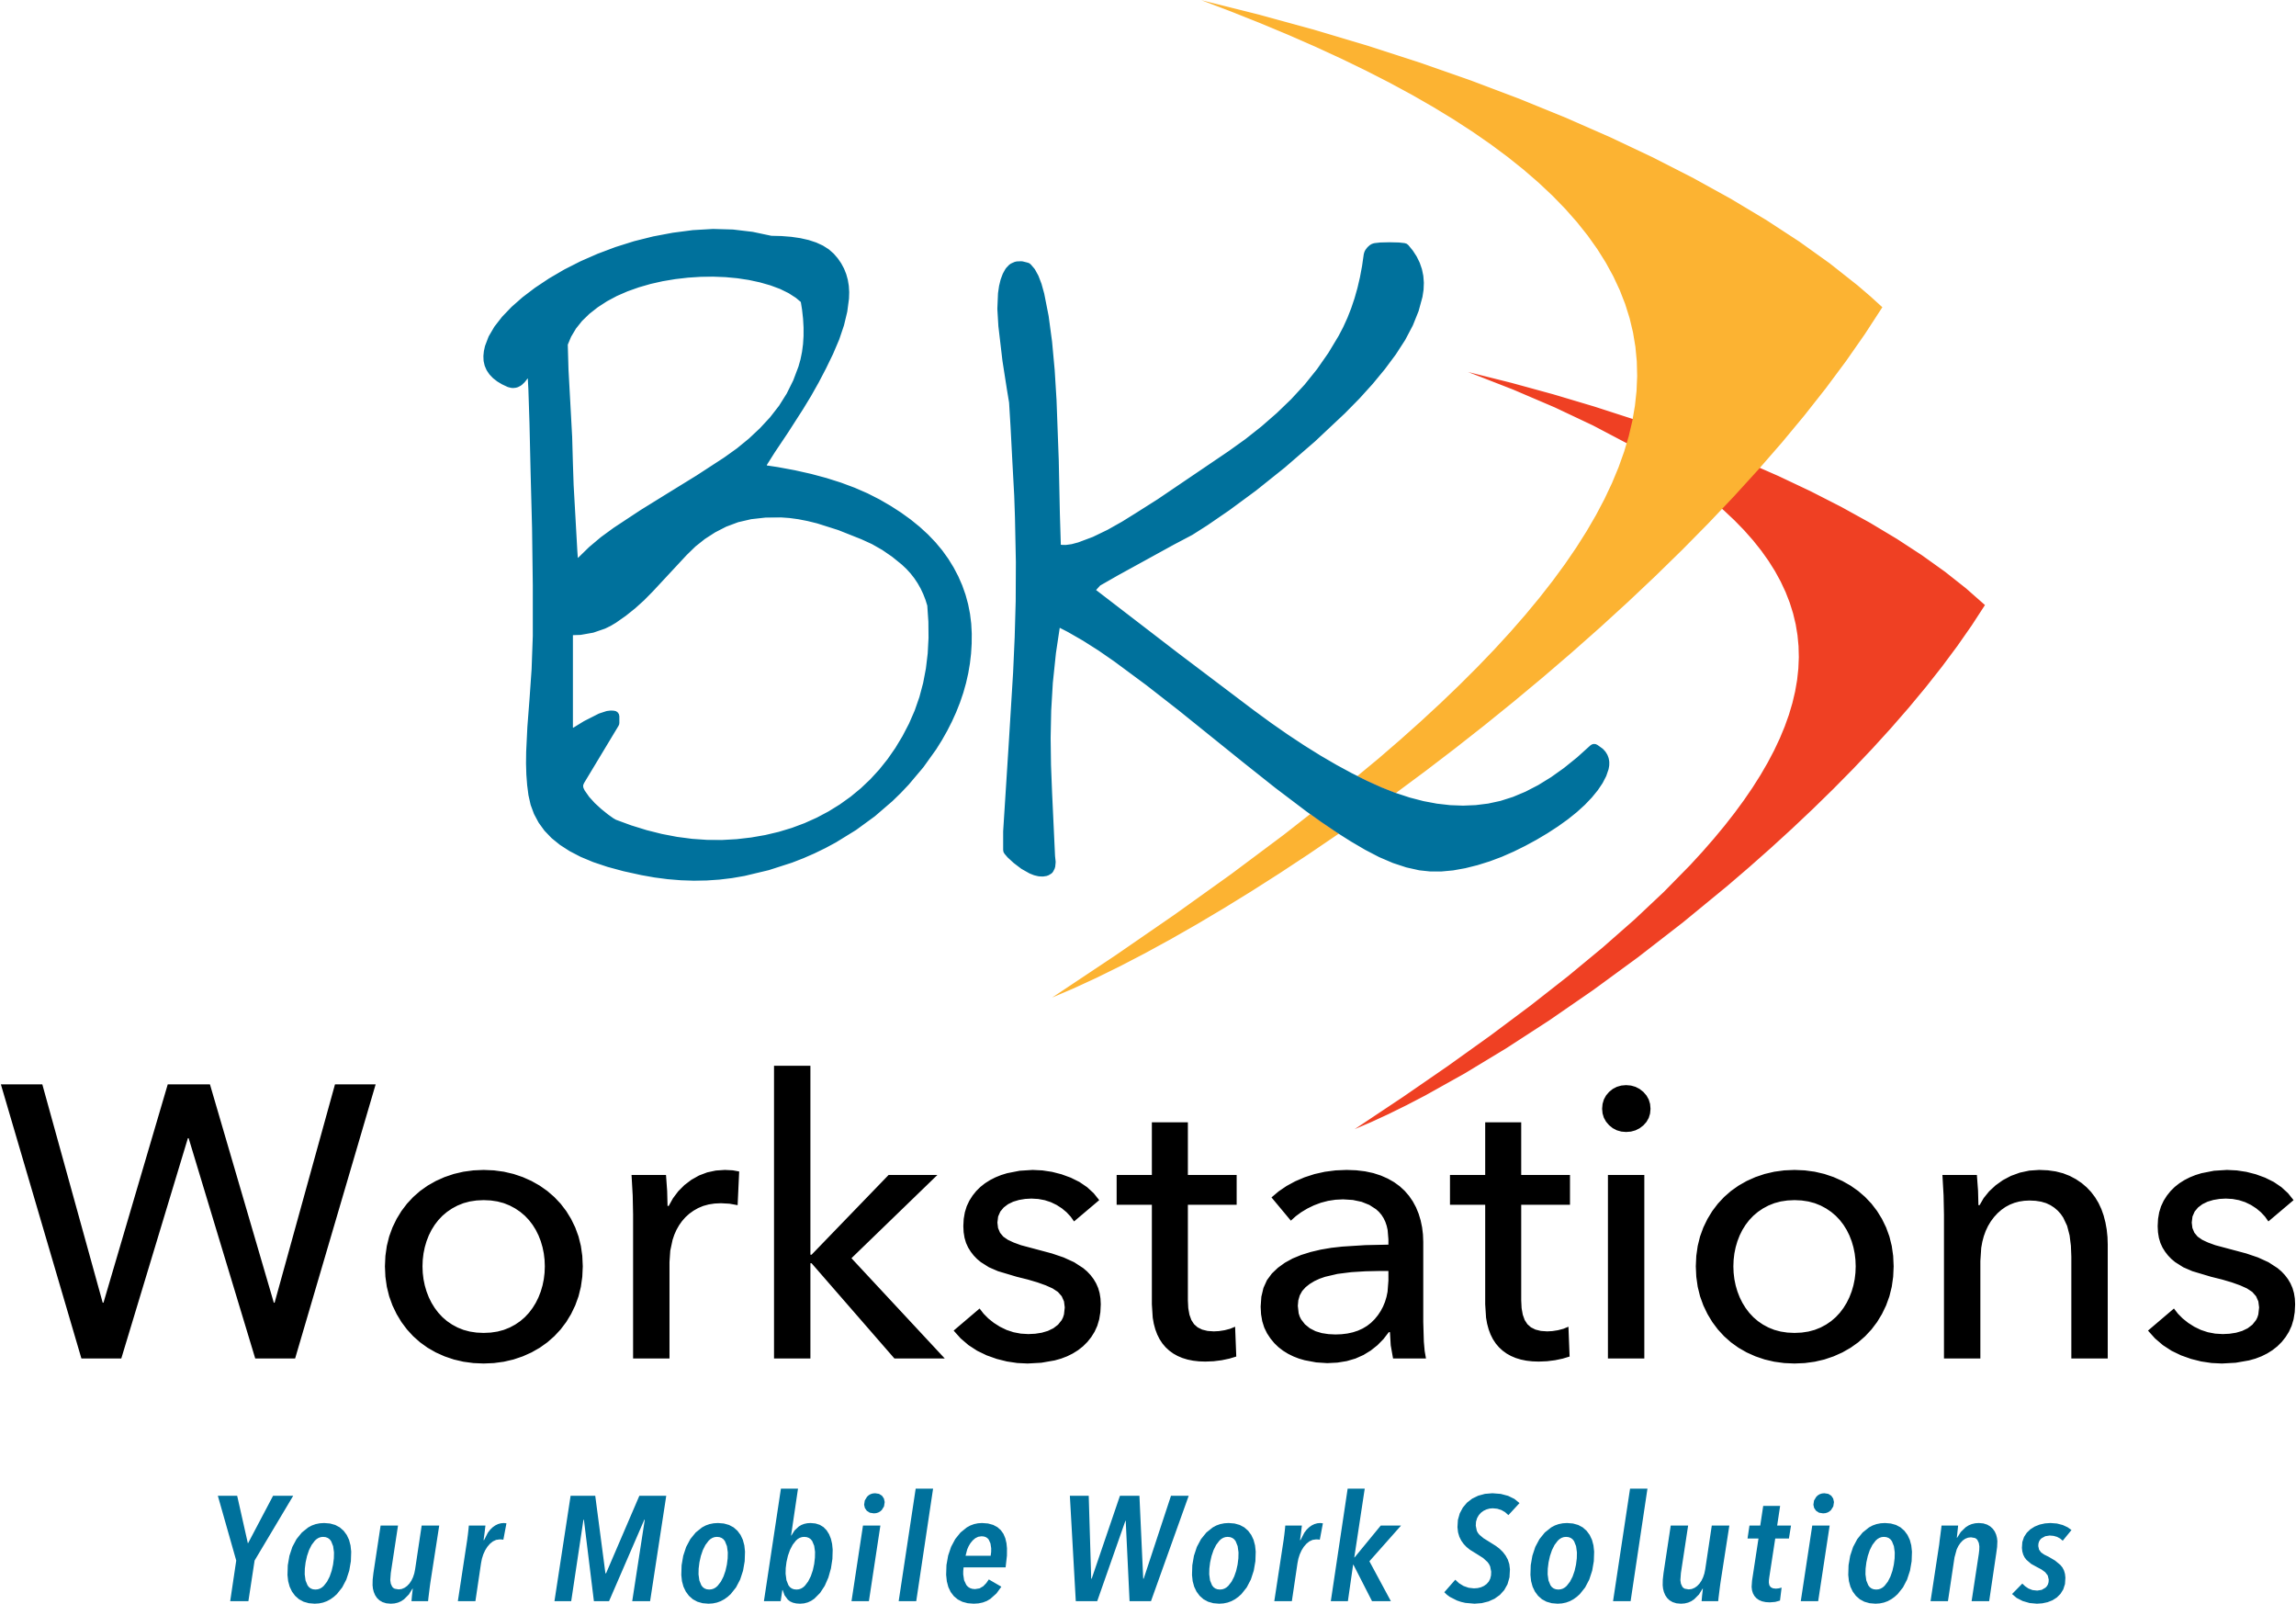 BK Workstations - Your mobile work solution.